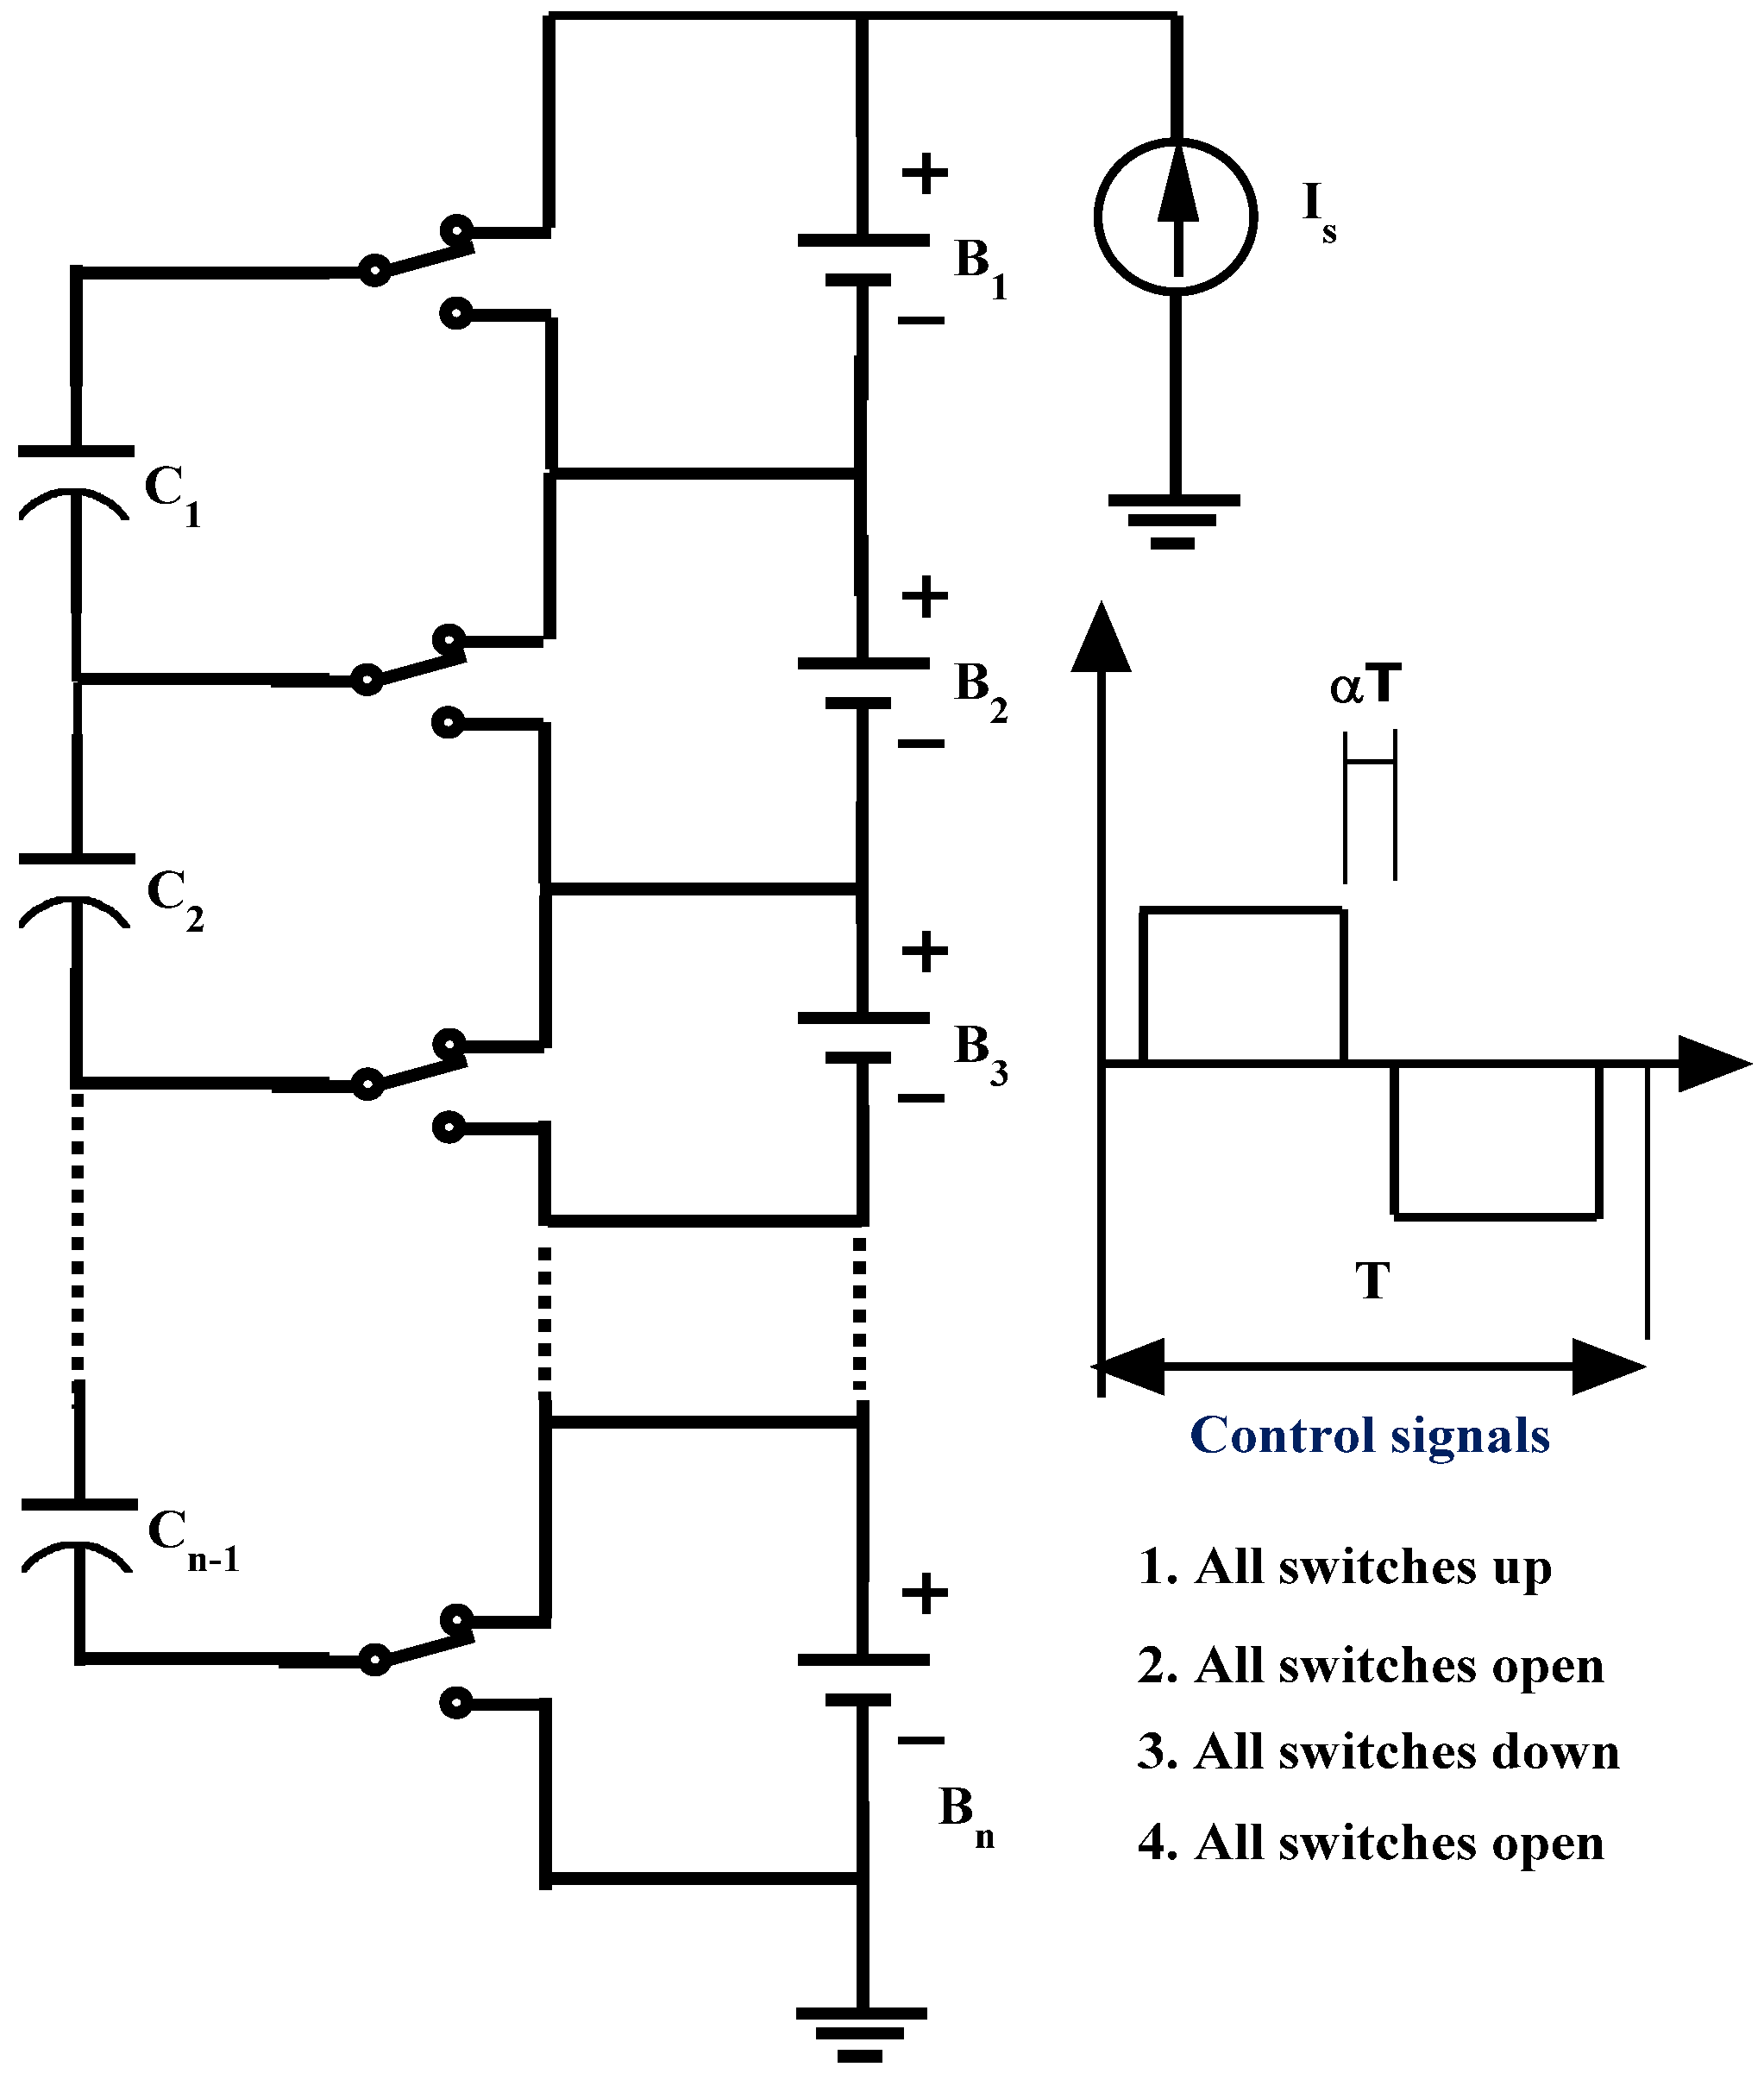 Energies Free Full Text Single Switched Capacitor Battery Shows A Circuit With C Connected In Series Resistor 06 02149 G002